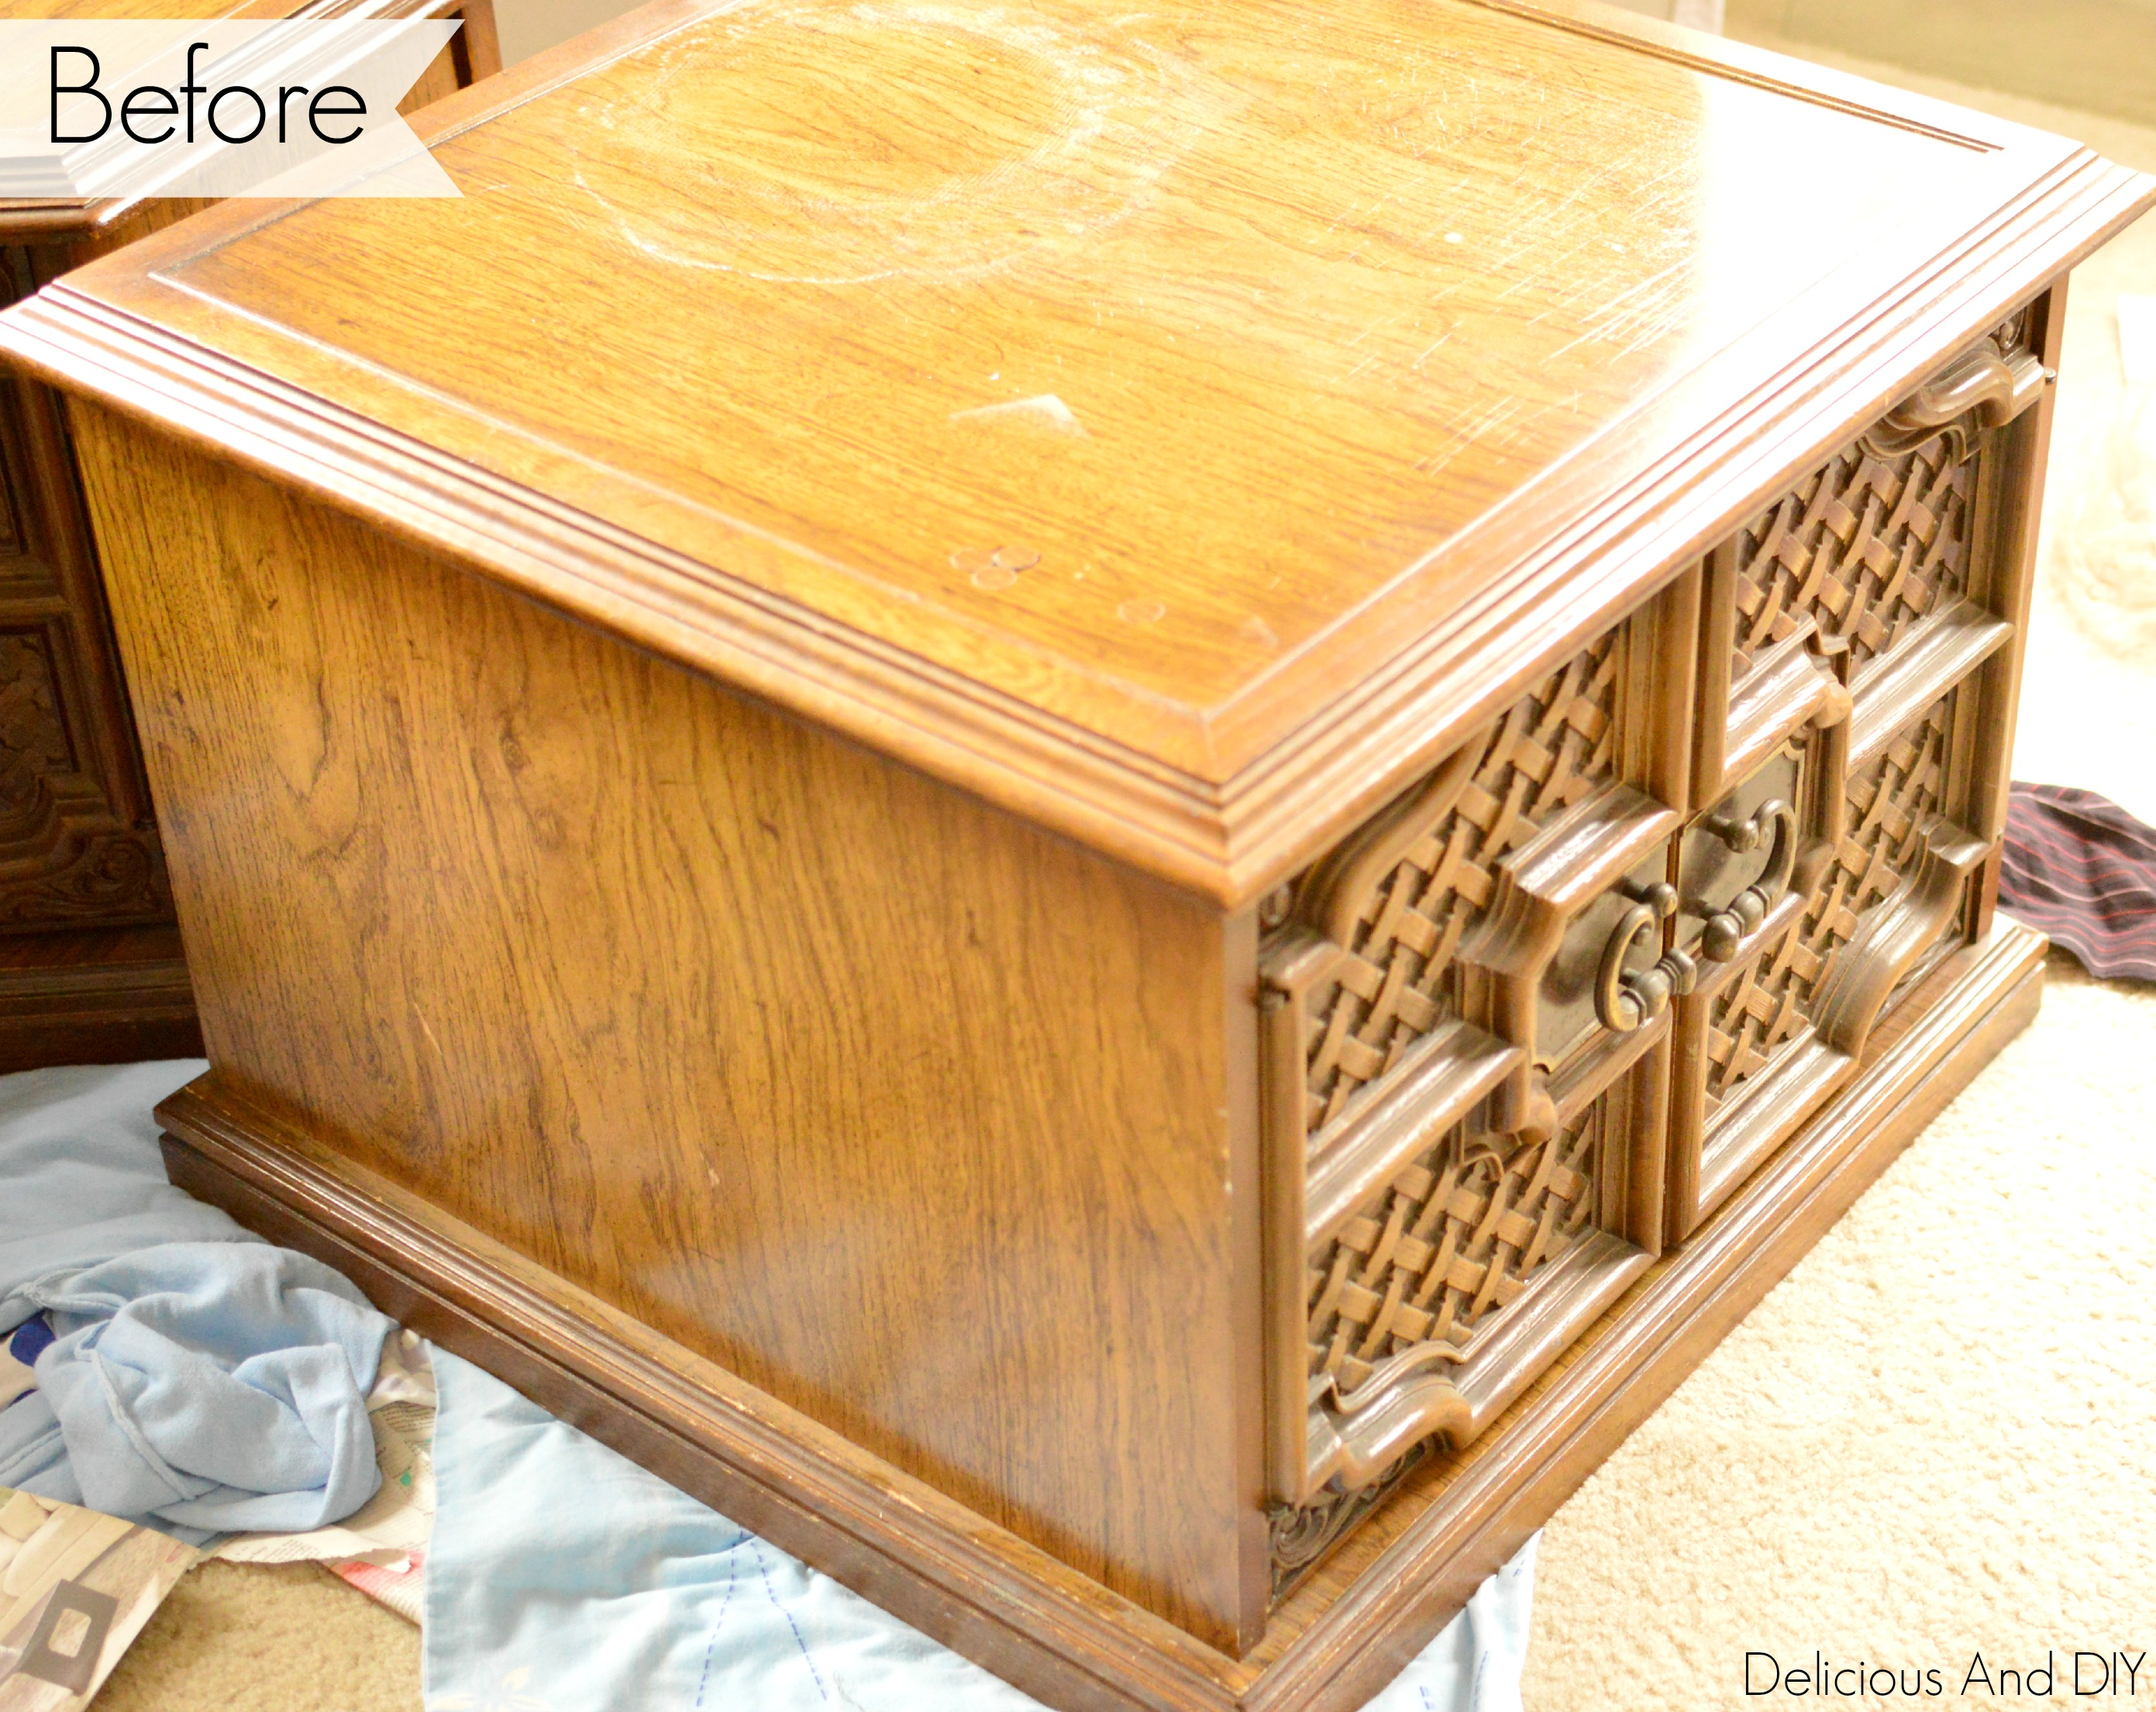 Moroccan And Maroon Table Makeover| Maroon Table |Home Decor |Table  Makeover| Bright